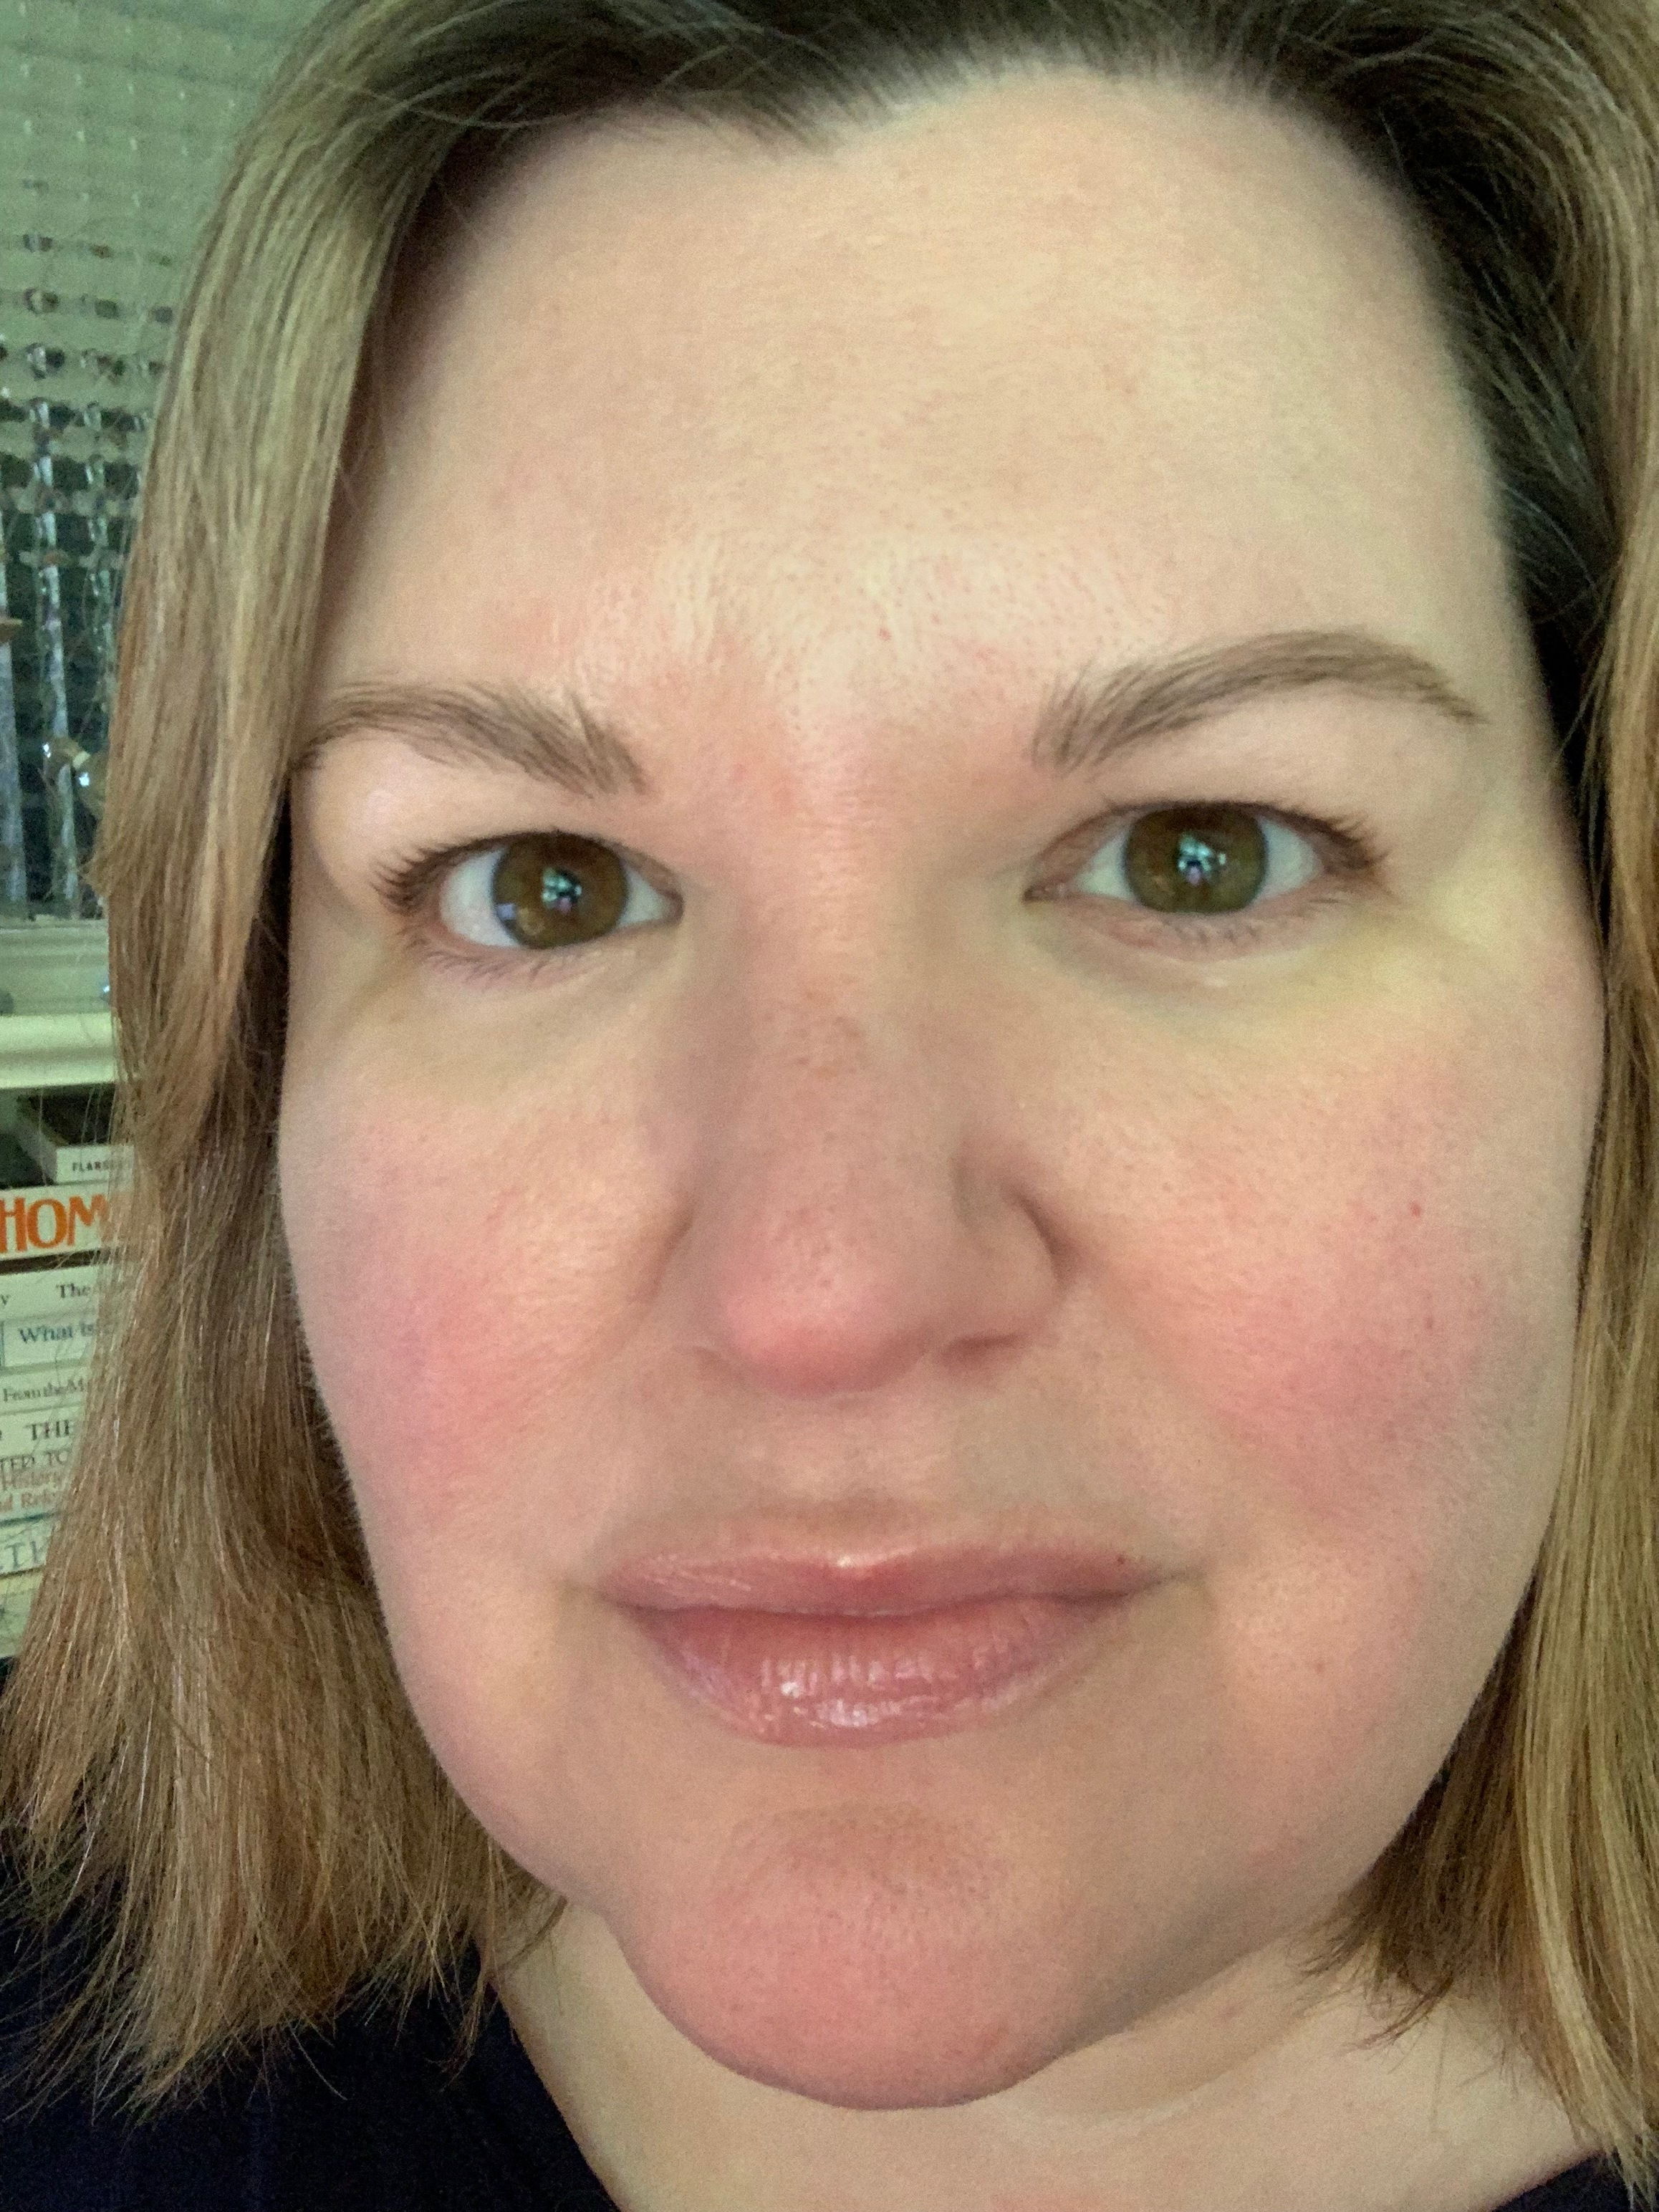 You can see the ever-present redness from the rosacea. I deal with redness the most. This photo also shows the second thing I deal with: crazy hair texture that is fine, prolific, straight, and wavy. Thank you to my hysterectomy! I just have on my morning routine and lip balm. #nofilter  And a shout-out to doing a skincare post with a book on Homiletics (preaching) in the background. That is truly how I move through life!